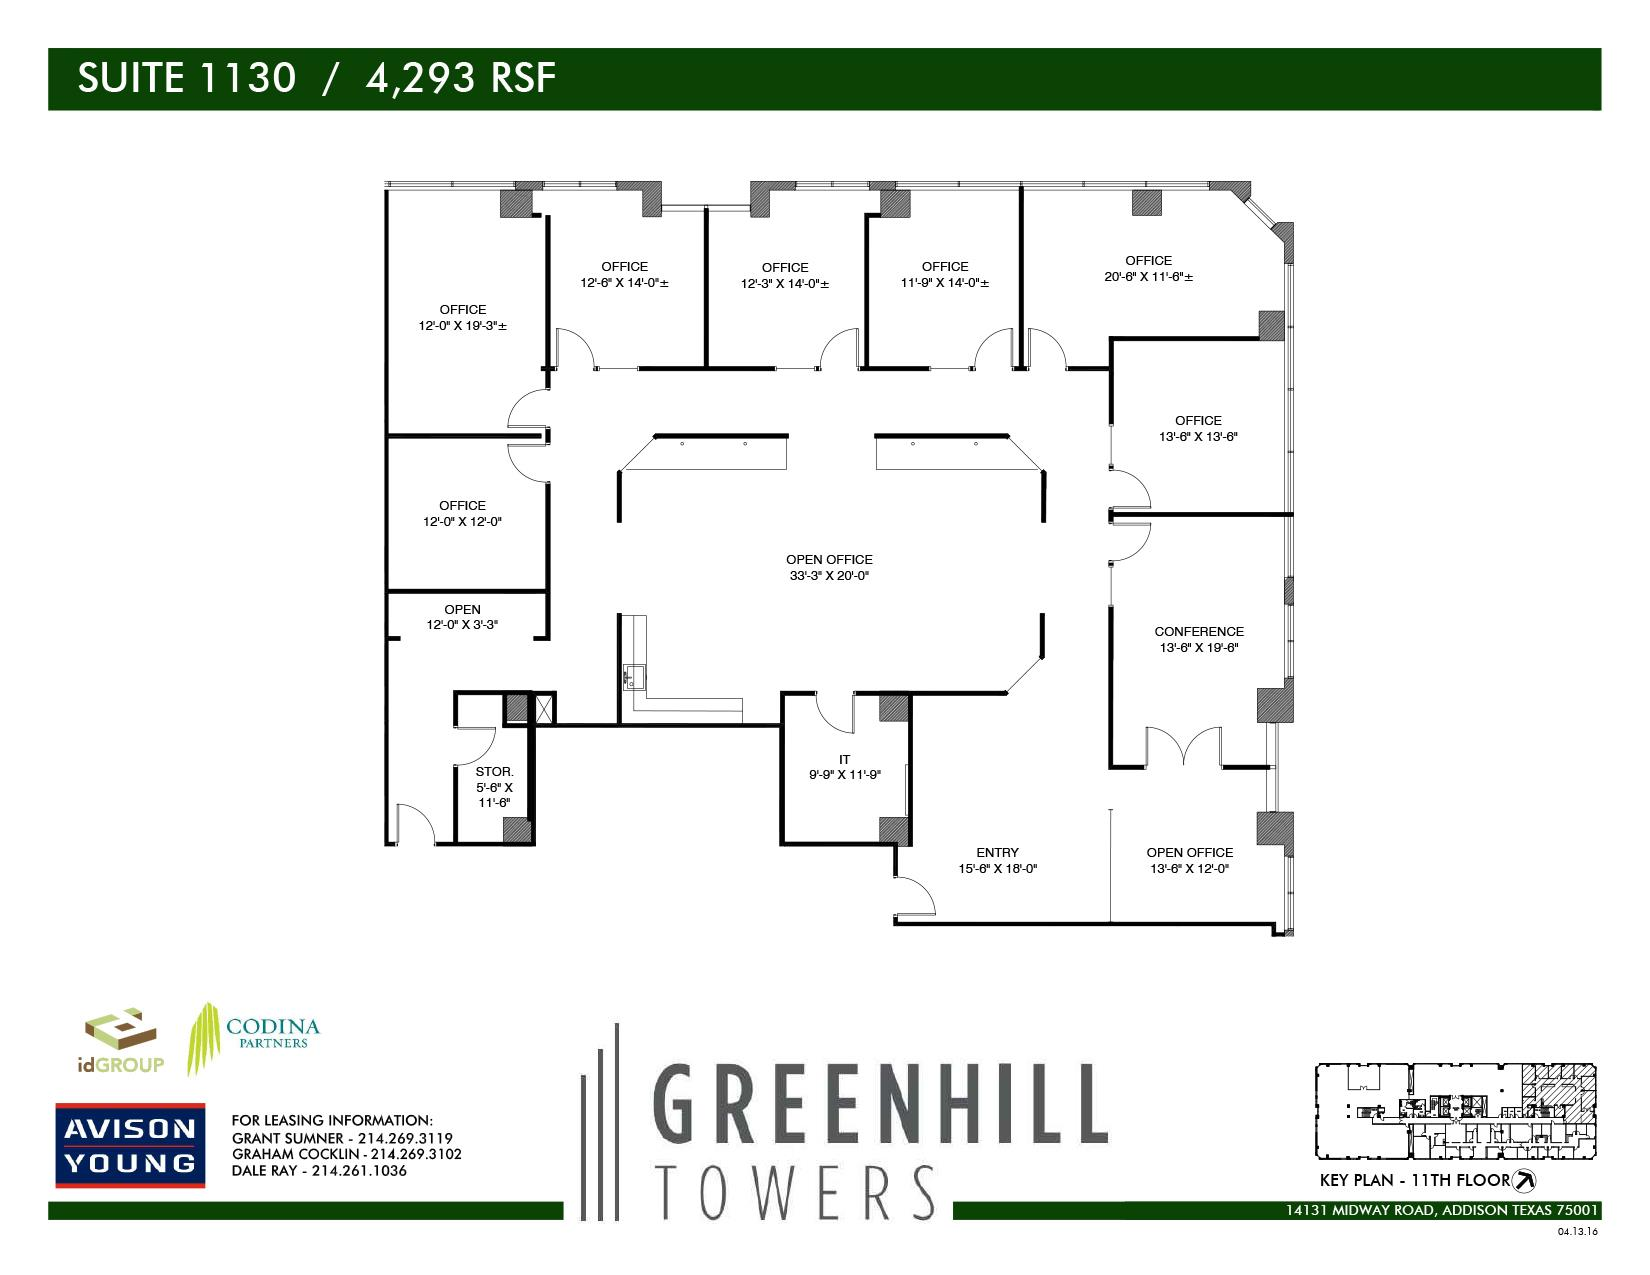 Codina Partners | Greenhill Towers - Suite 1130